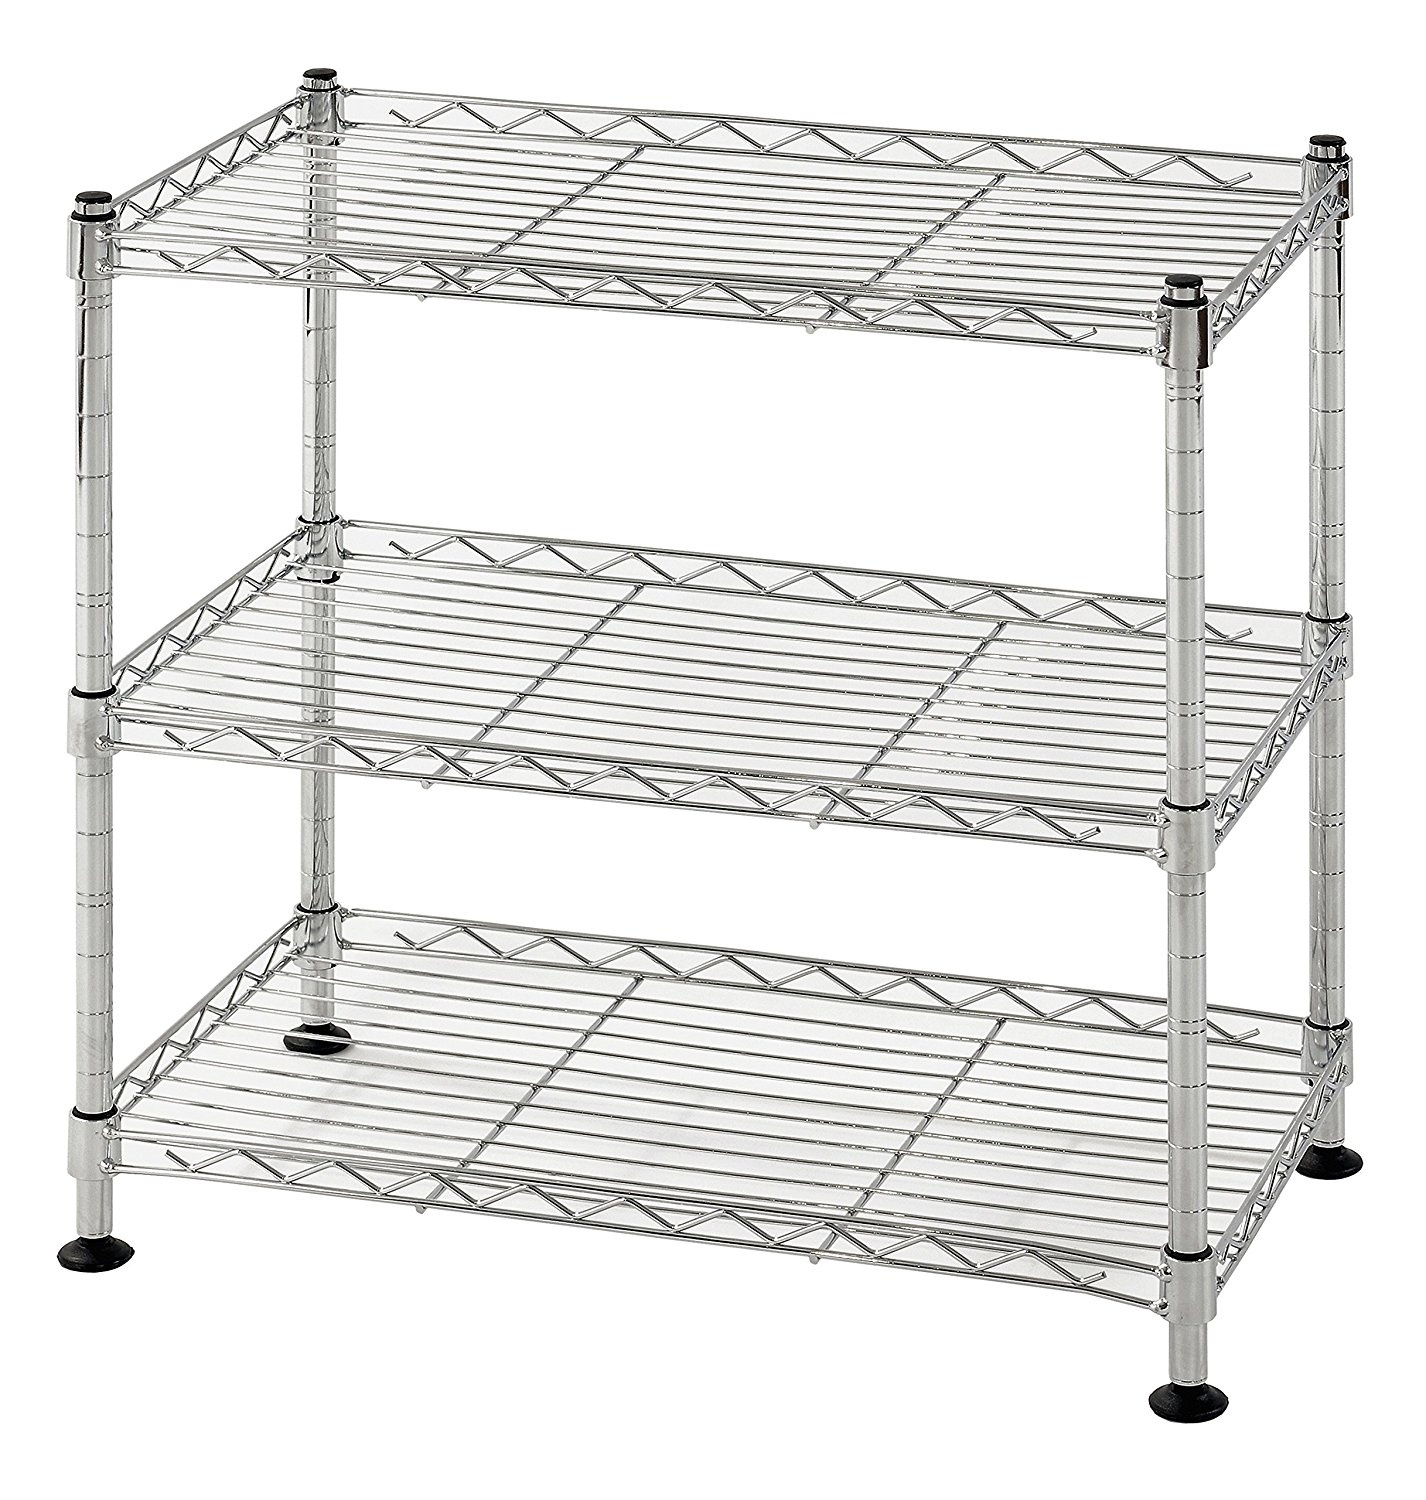 Muscle Rack WS181018-C Steel Adjustable Wire Shelving, 46cm H x 46cm ...